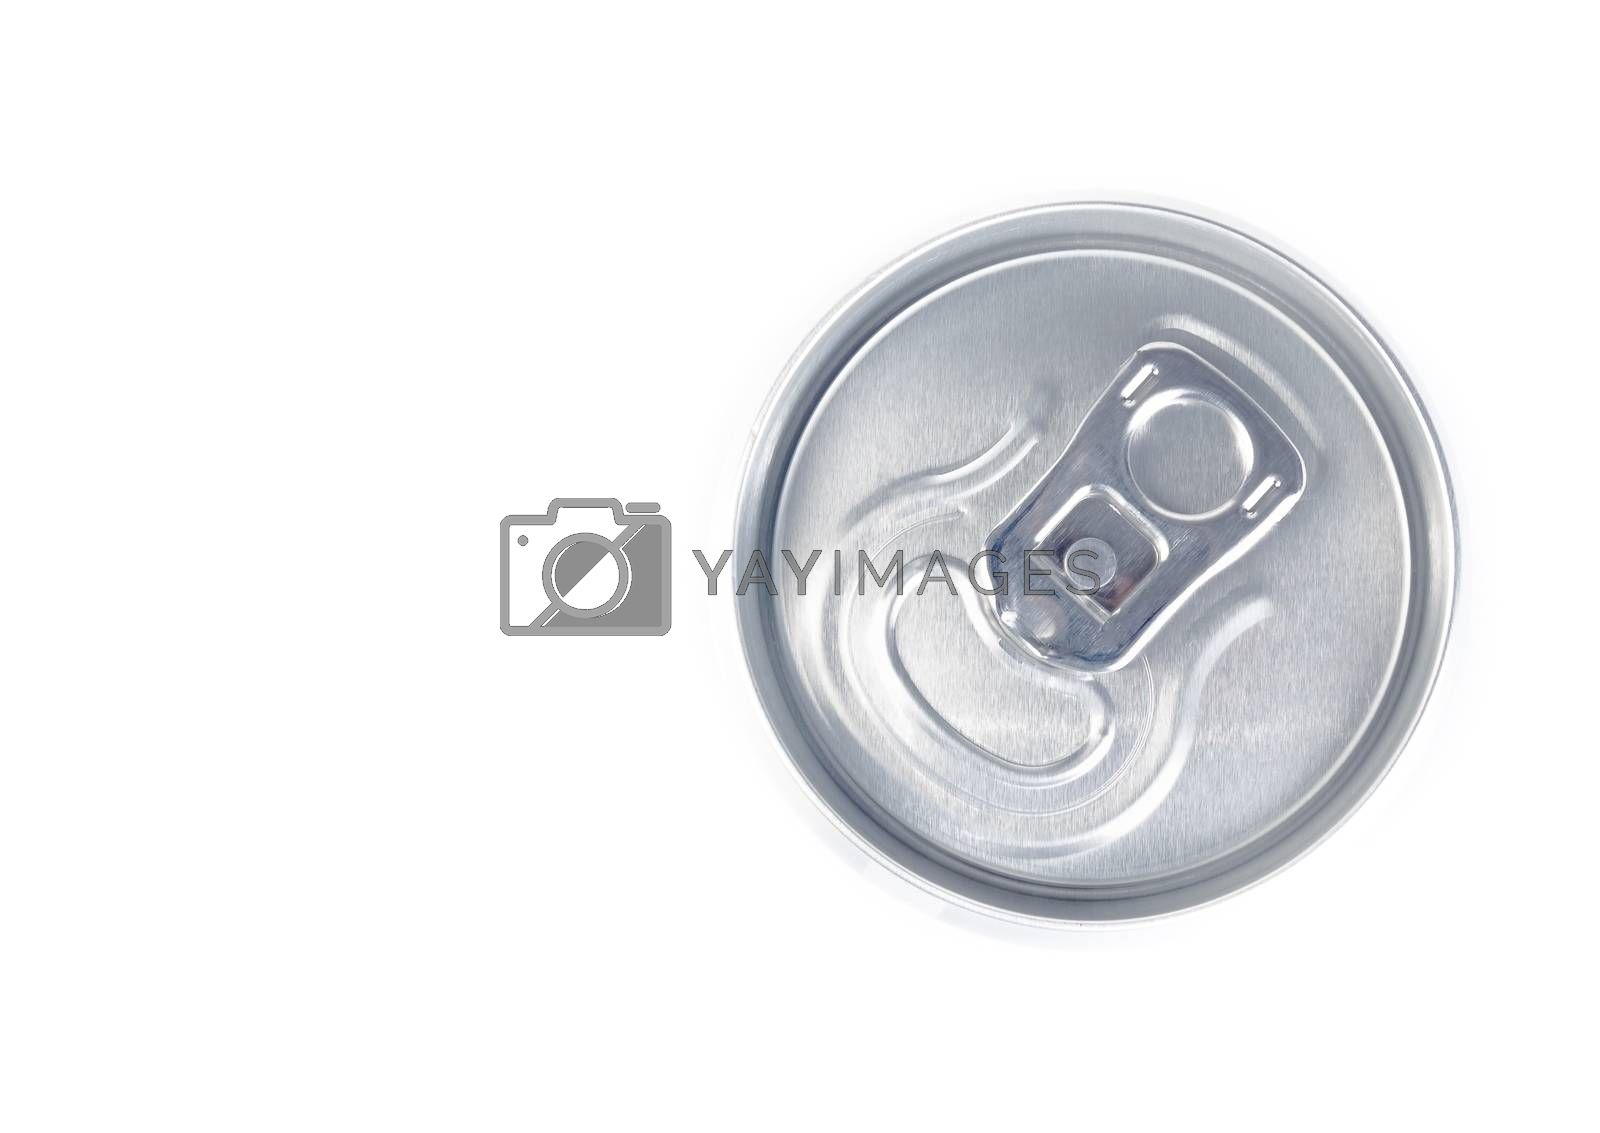 top of view of metal aluminum beverage drink can by donfiore